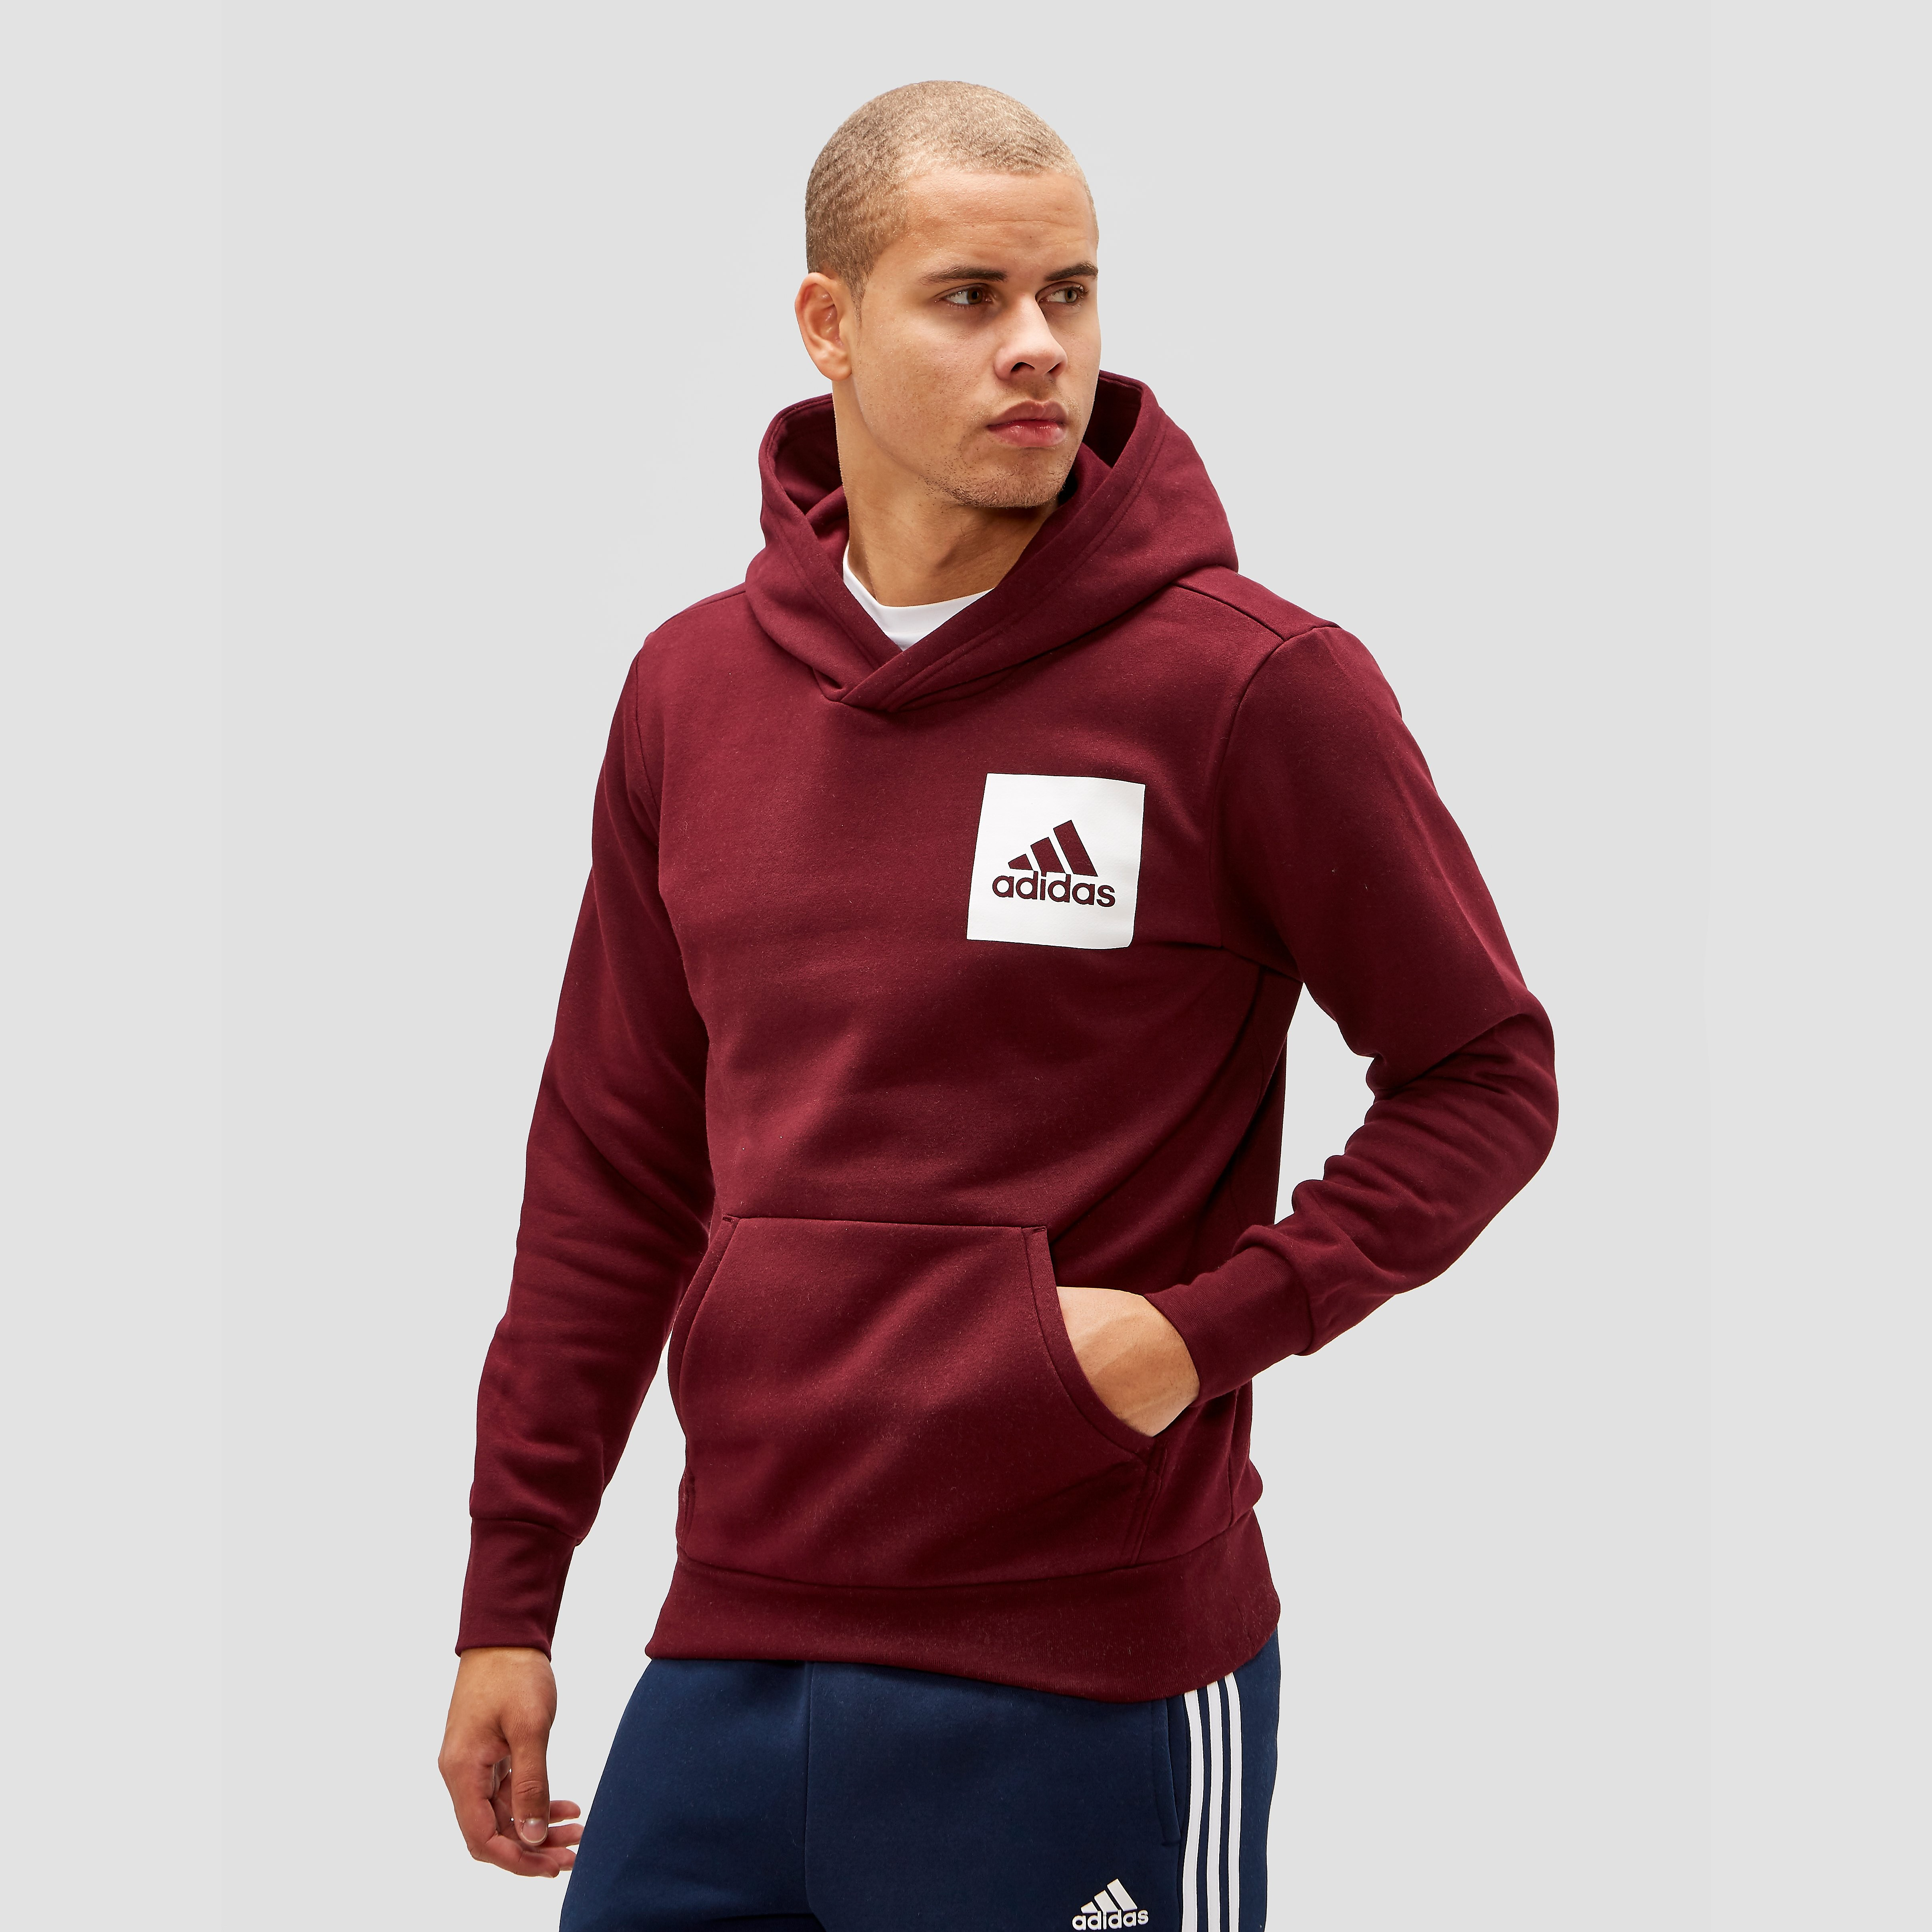 ADIDAS ESSENTIALS LOGO TRUI ROOD HEREN